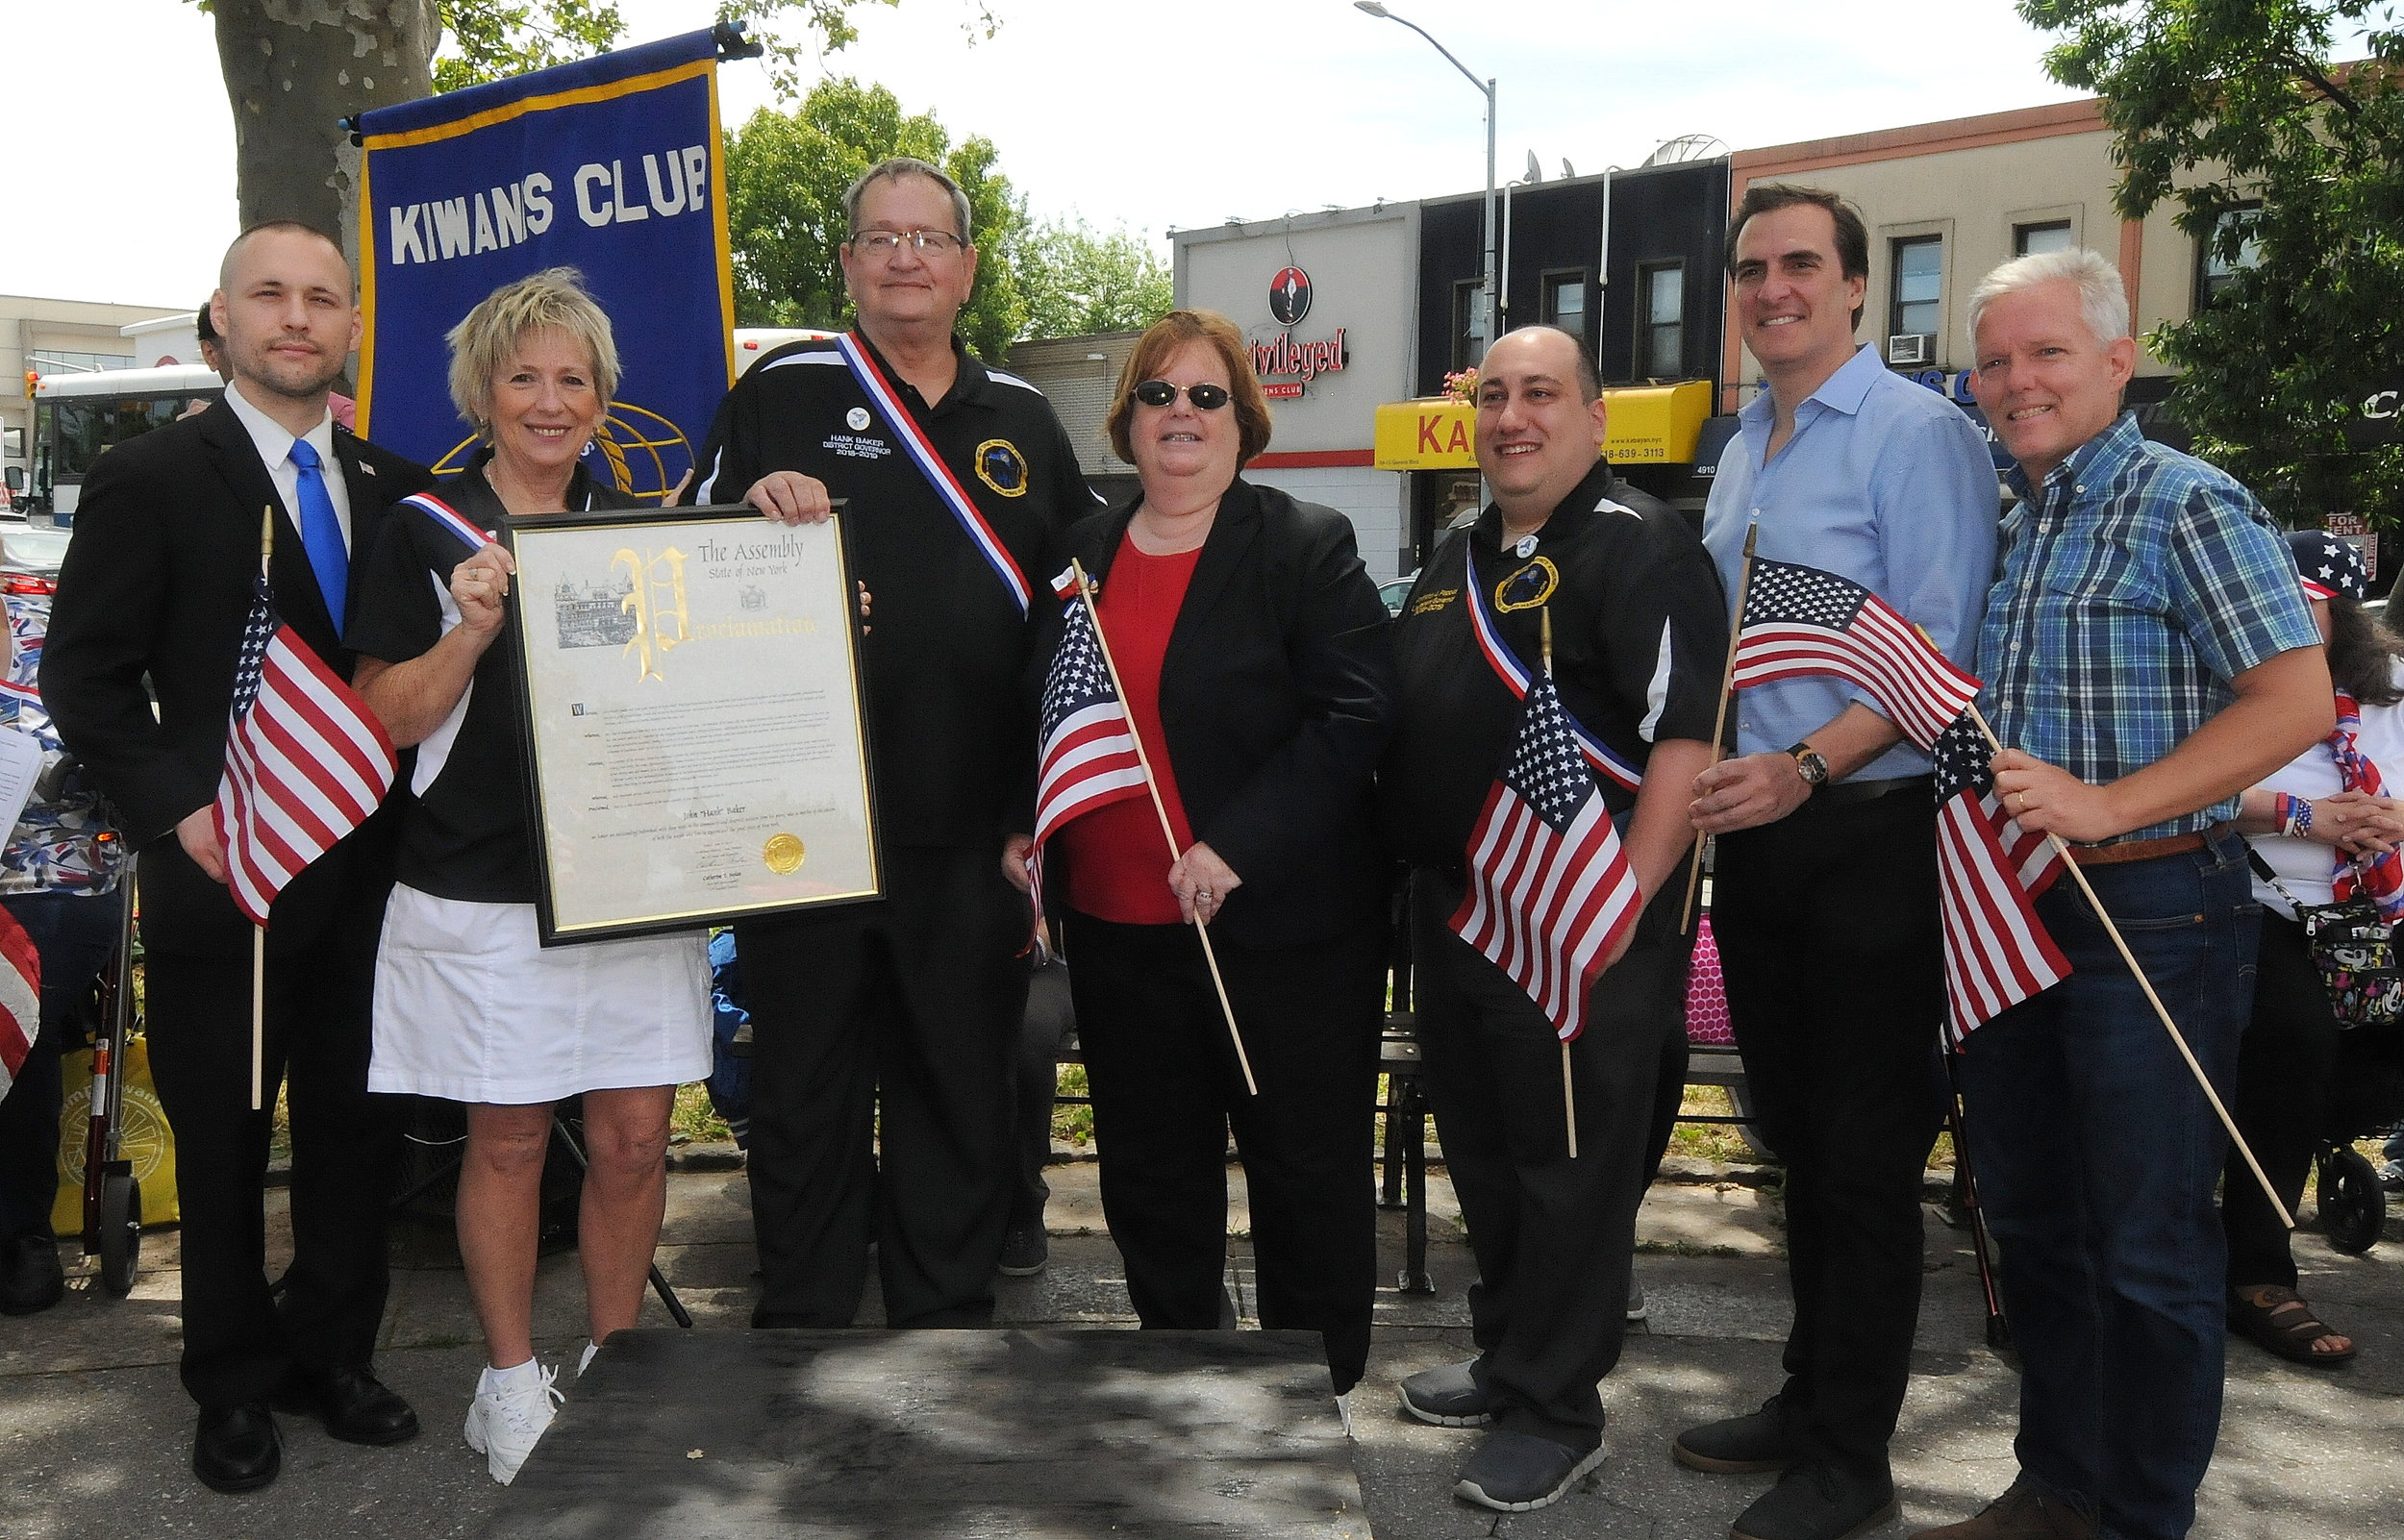 From left: Assemblymember Brian Barnwell; Bonnie Baker; award recipient and parade Grand Marshal Hank Beker, the Governor of the Kiwanis New York State District; Assemblymember Cathy Nolan; Anthony Pappas,the Lieutenant Governor of the Queens West Division; State Sen. Michael Gianaris and Councilmember Jimmy Van Bramer.